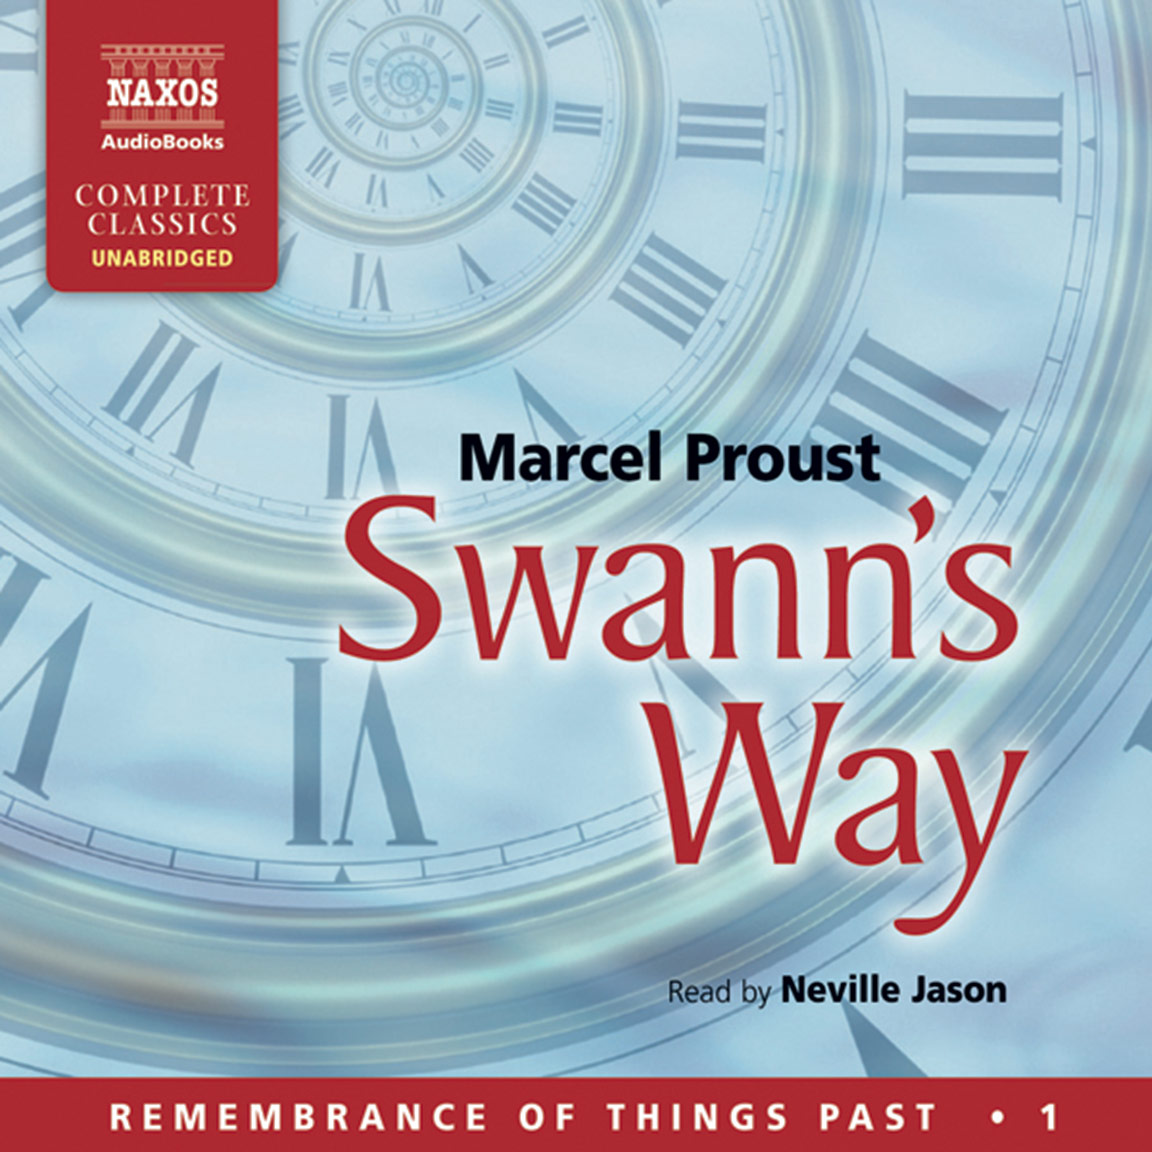 Swann's Way (unabridged)